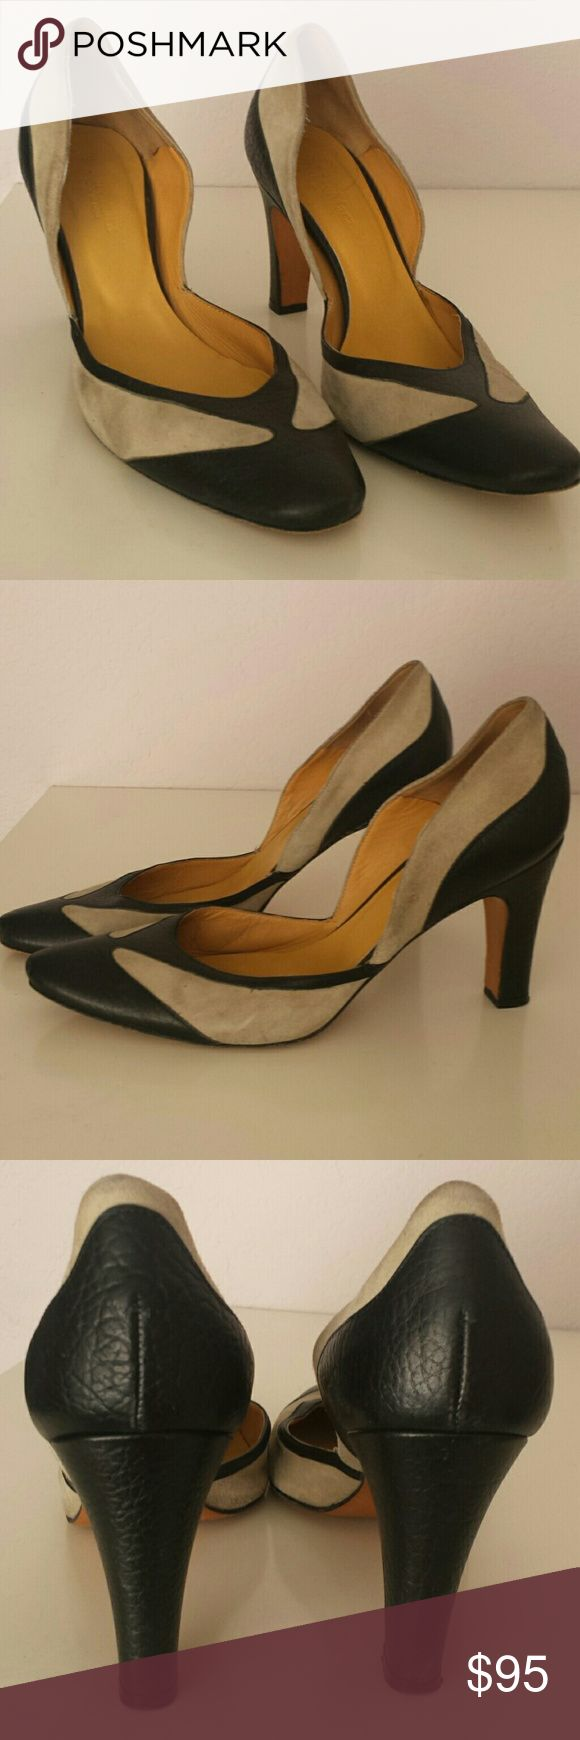 """Max Mara Two Toned Heels Beautifully sculpted Max Mara heels in Nude and leather with a 3.25"""" heel. Shoes are in good used condition and have minor wear on top and sides.  Made in Italy.   B MaxMara Shoes Heels"""